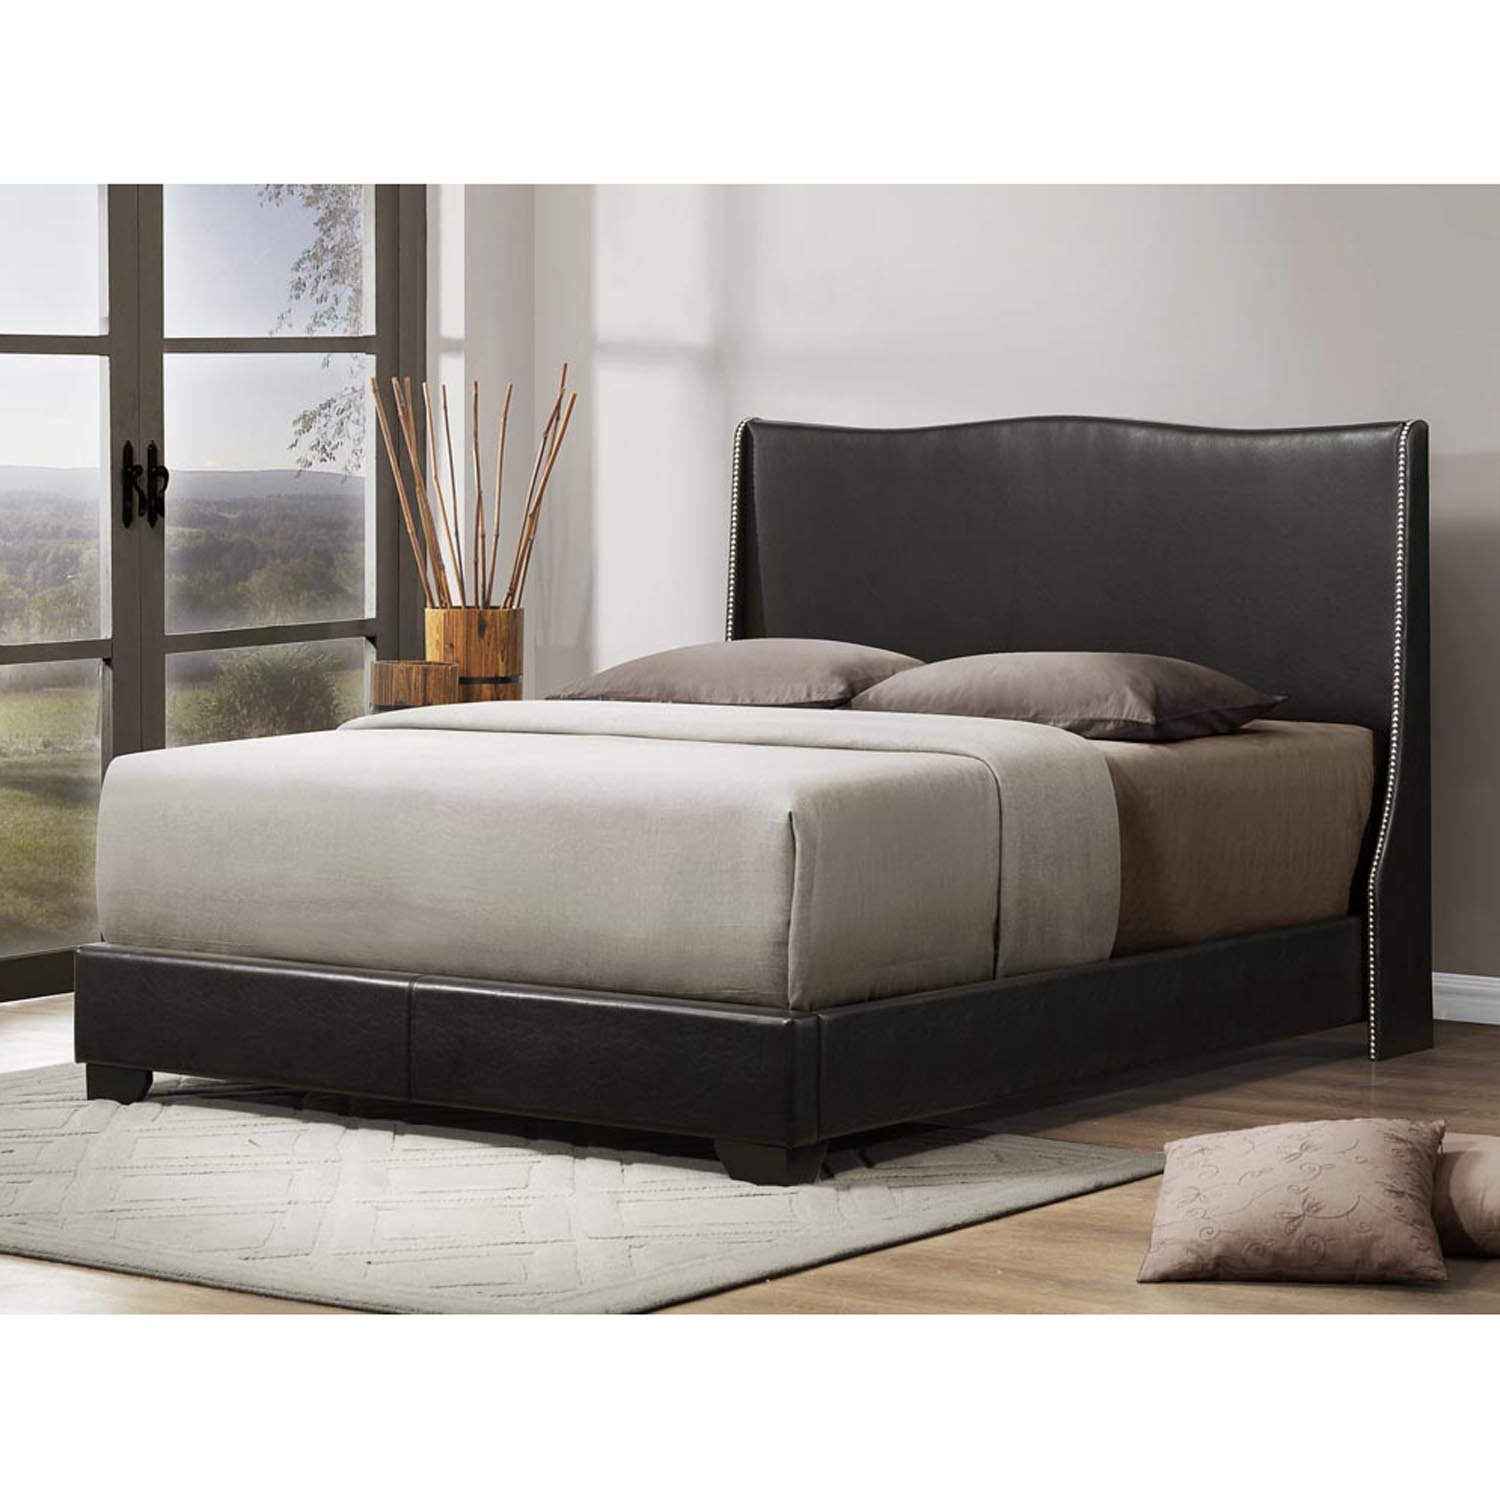 Amazon com baxton studio duncombe modern bed with upholstered headboard queen black kitchen dining